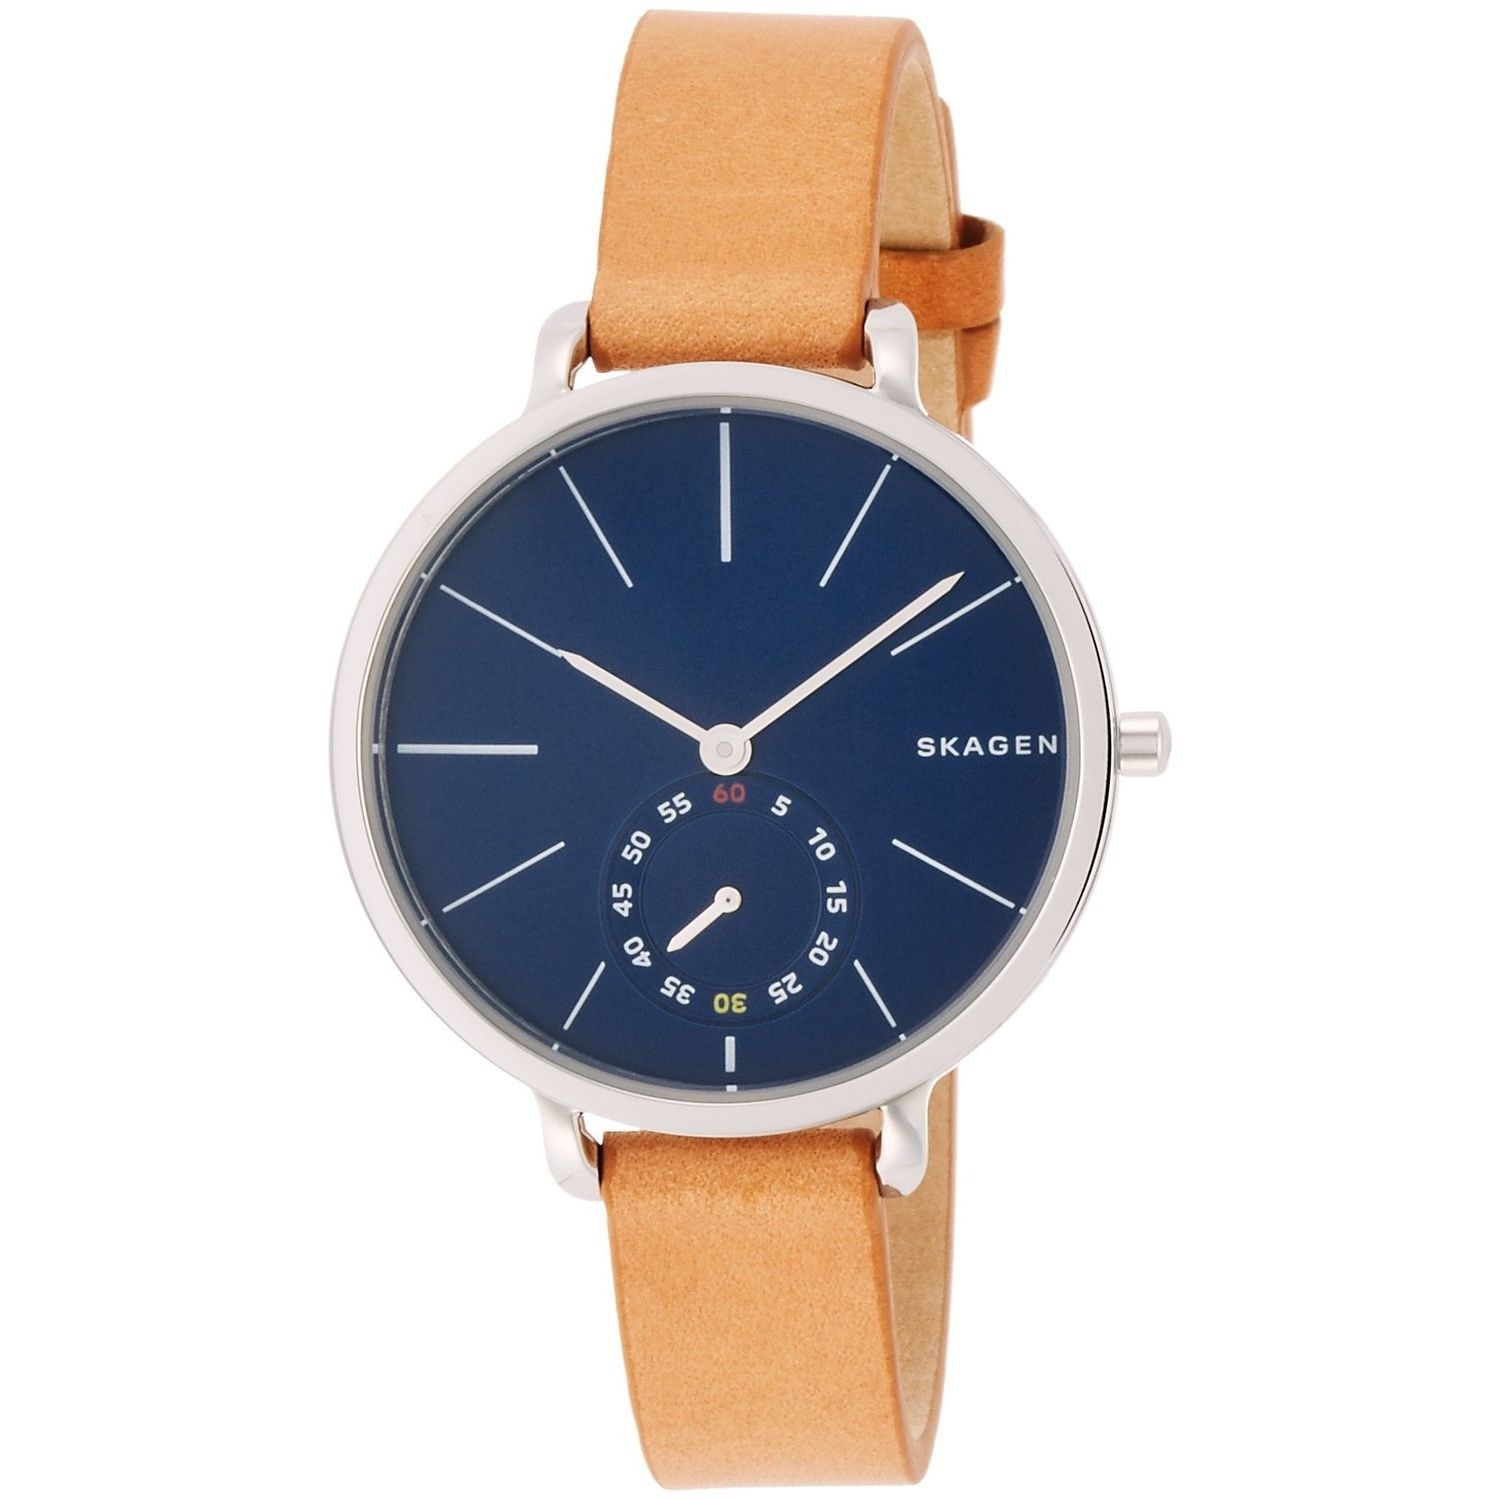 watch com slim hagen skagen main watches unisex watchshop